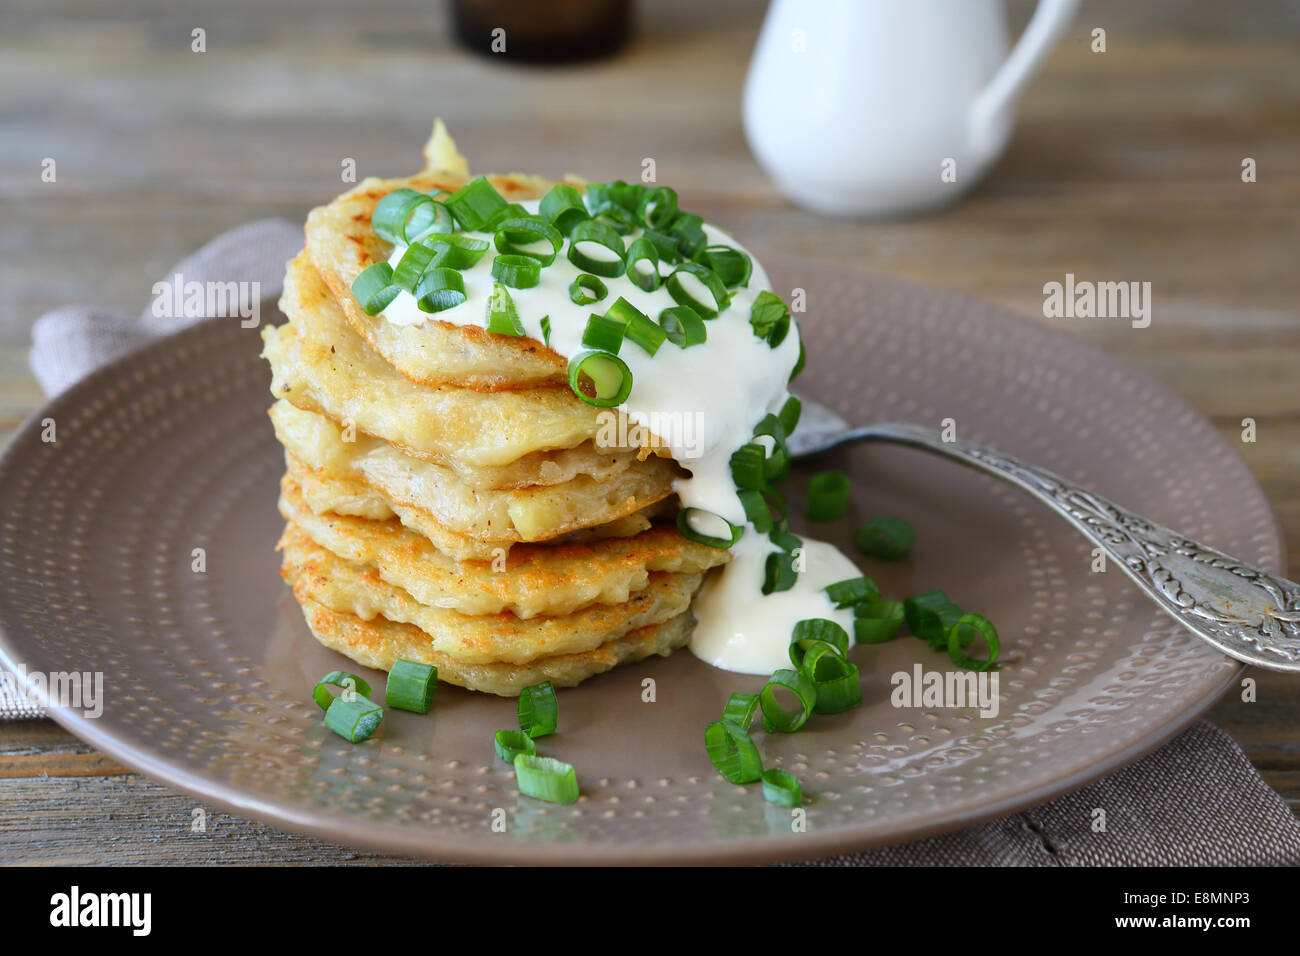 Potato pancakes with sour cream and green onions, delicious food - Stock Image